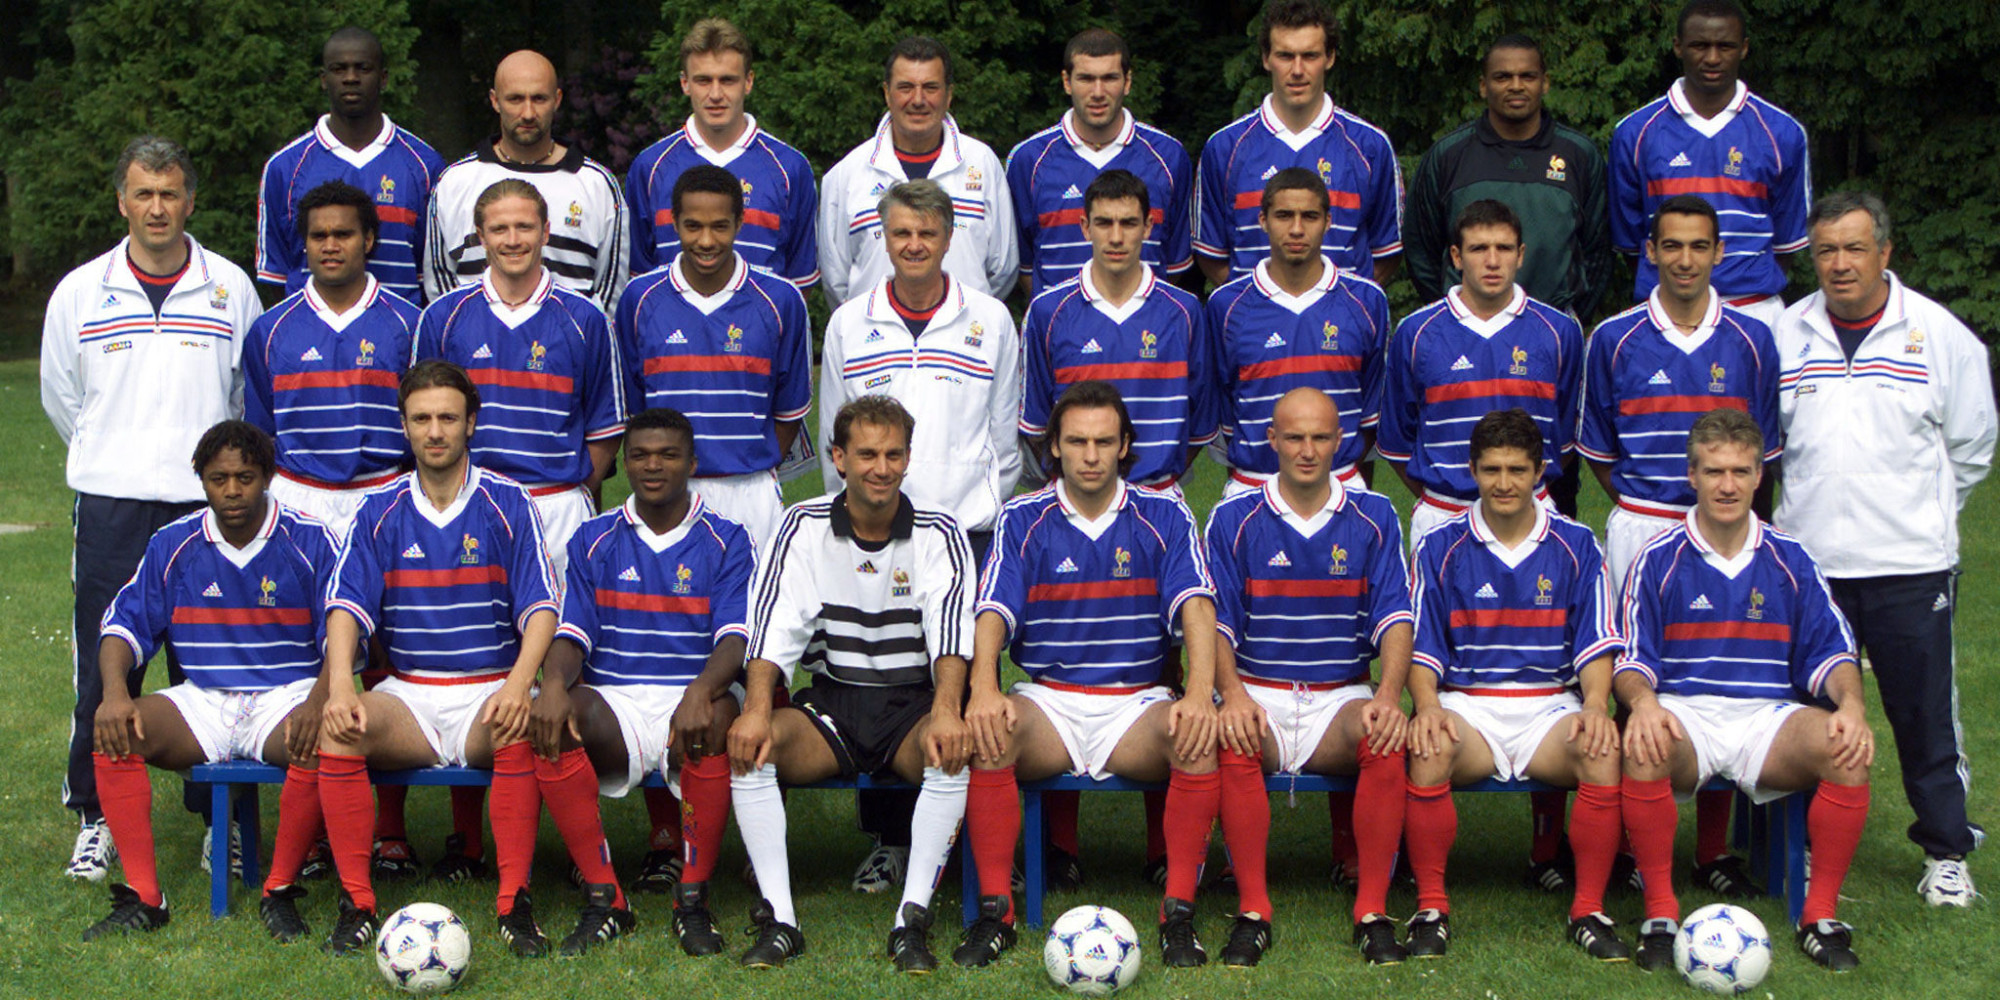 The French national soccer team poses for the official team picture at Clairfontaine, southern Paris..